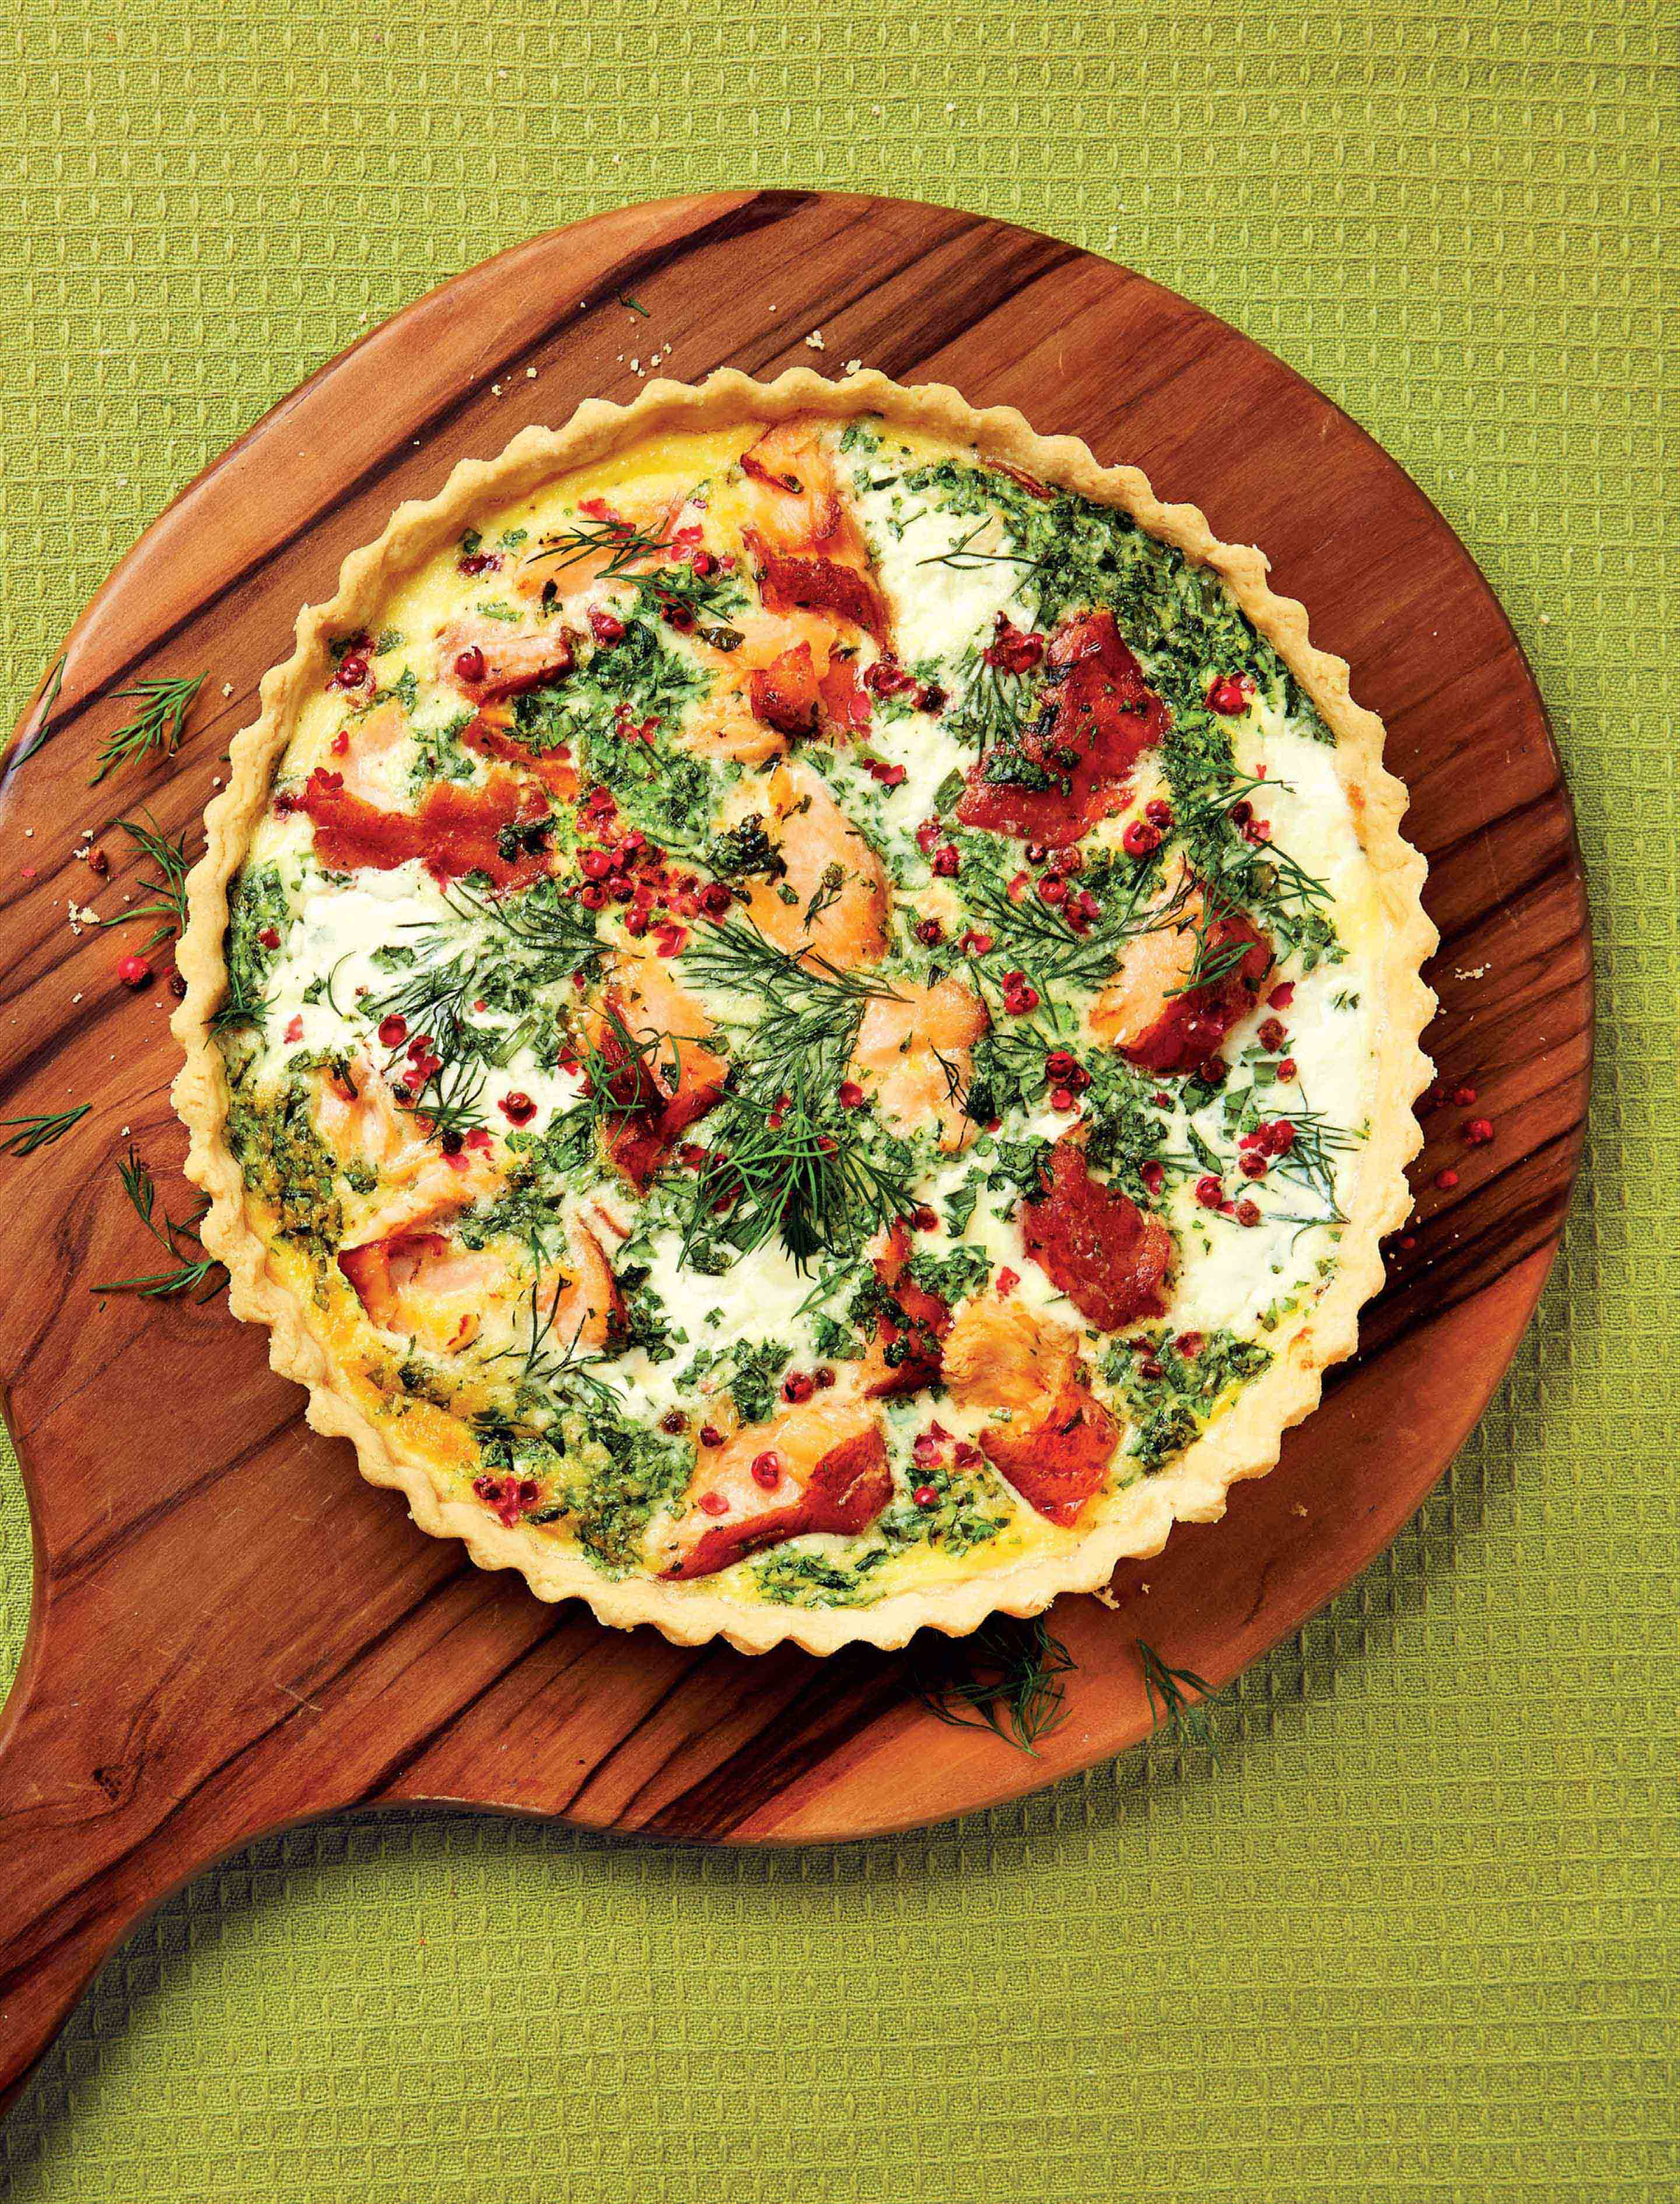 Salmon quiche with pink peppercorns